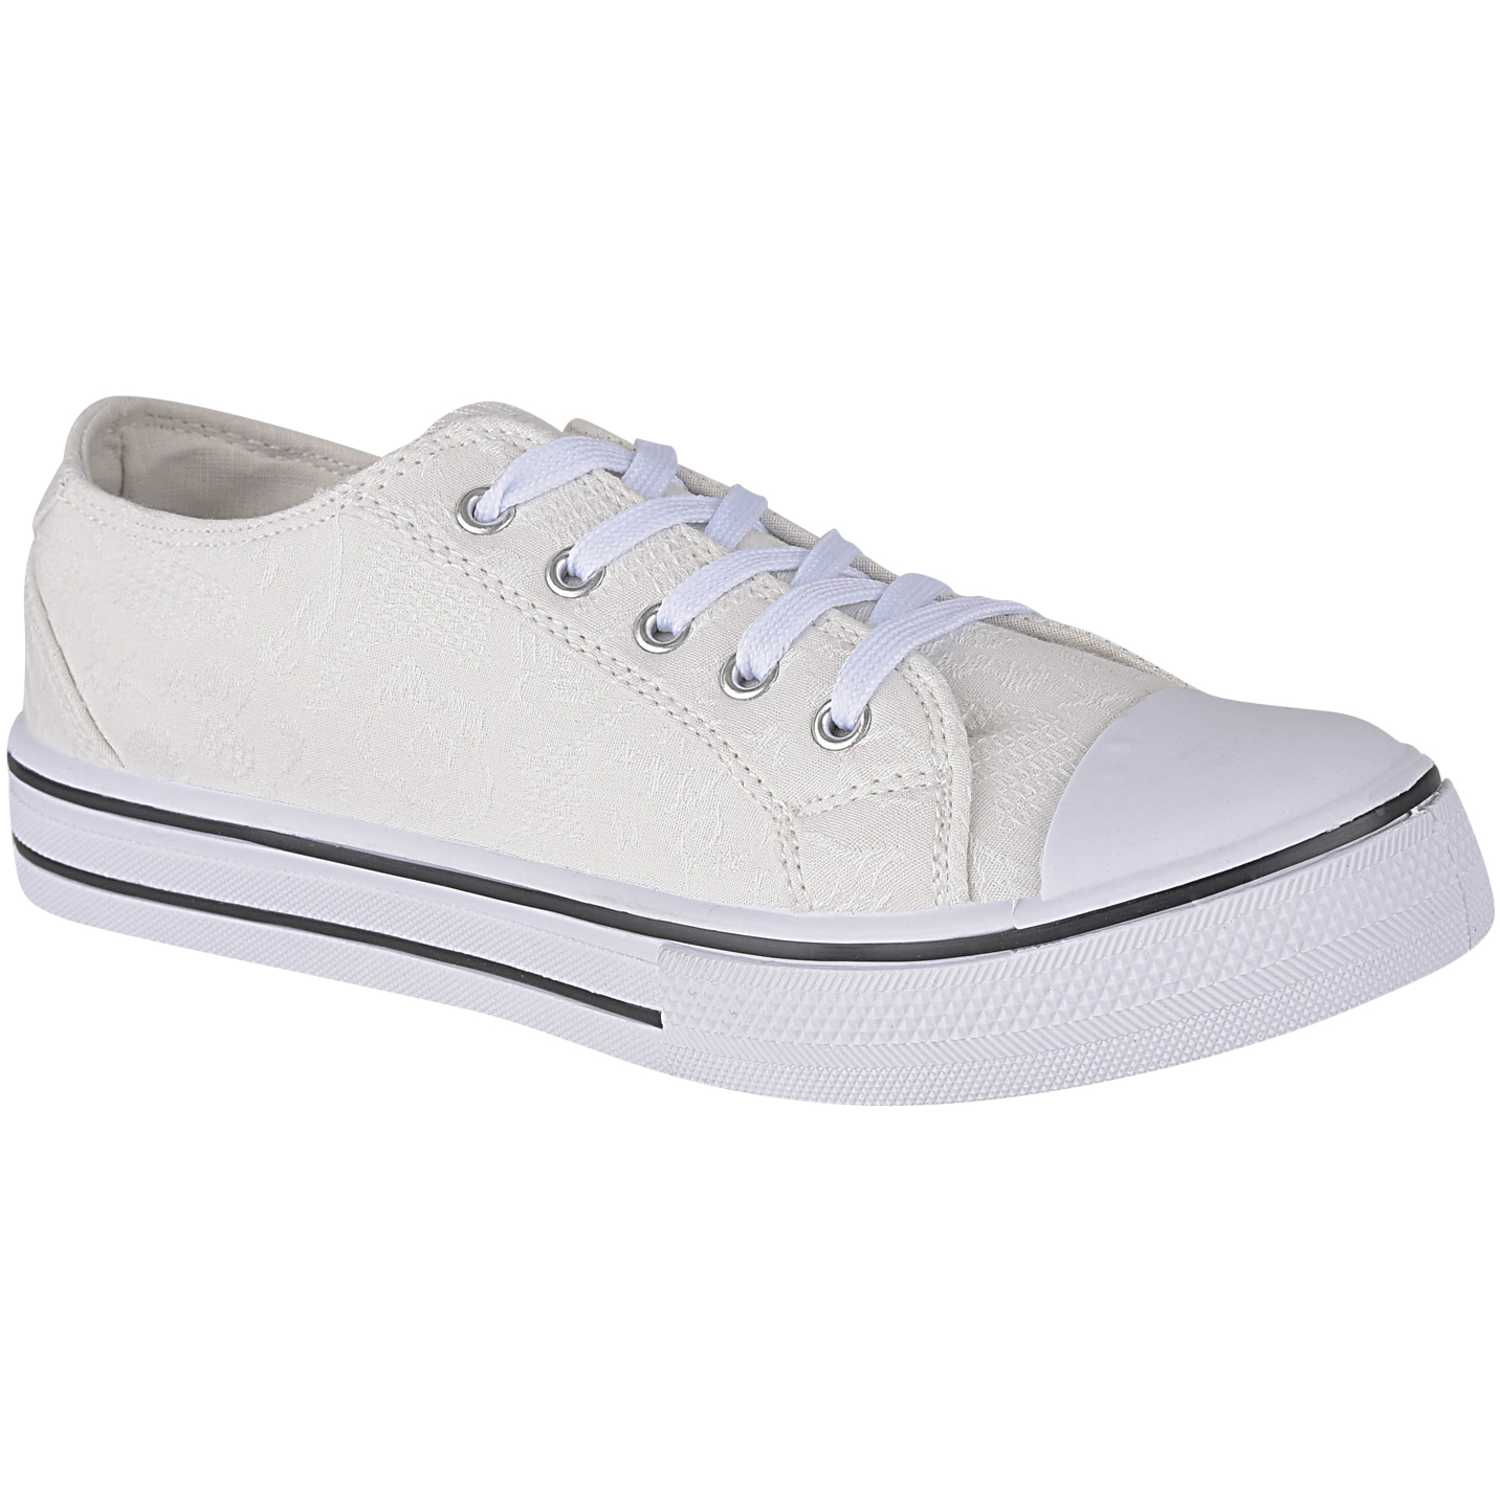 Platanitos zc d001 Blanco Zapatillas Fashion